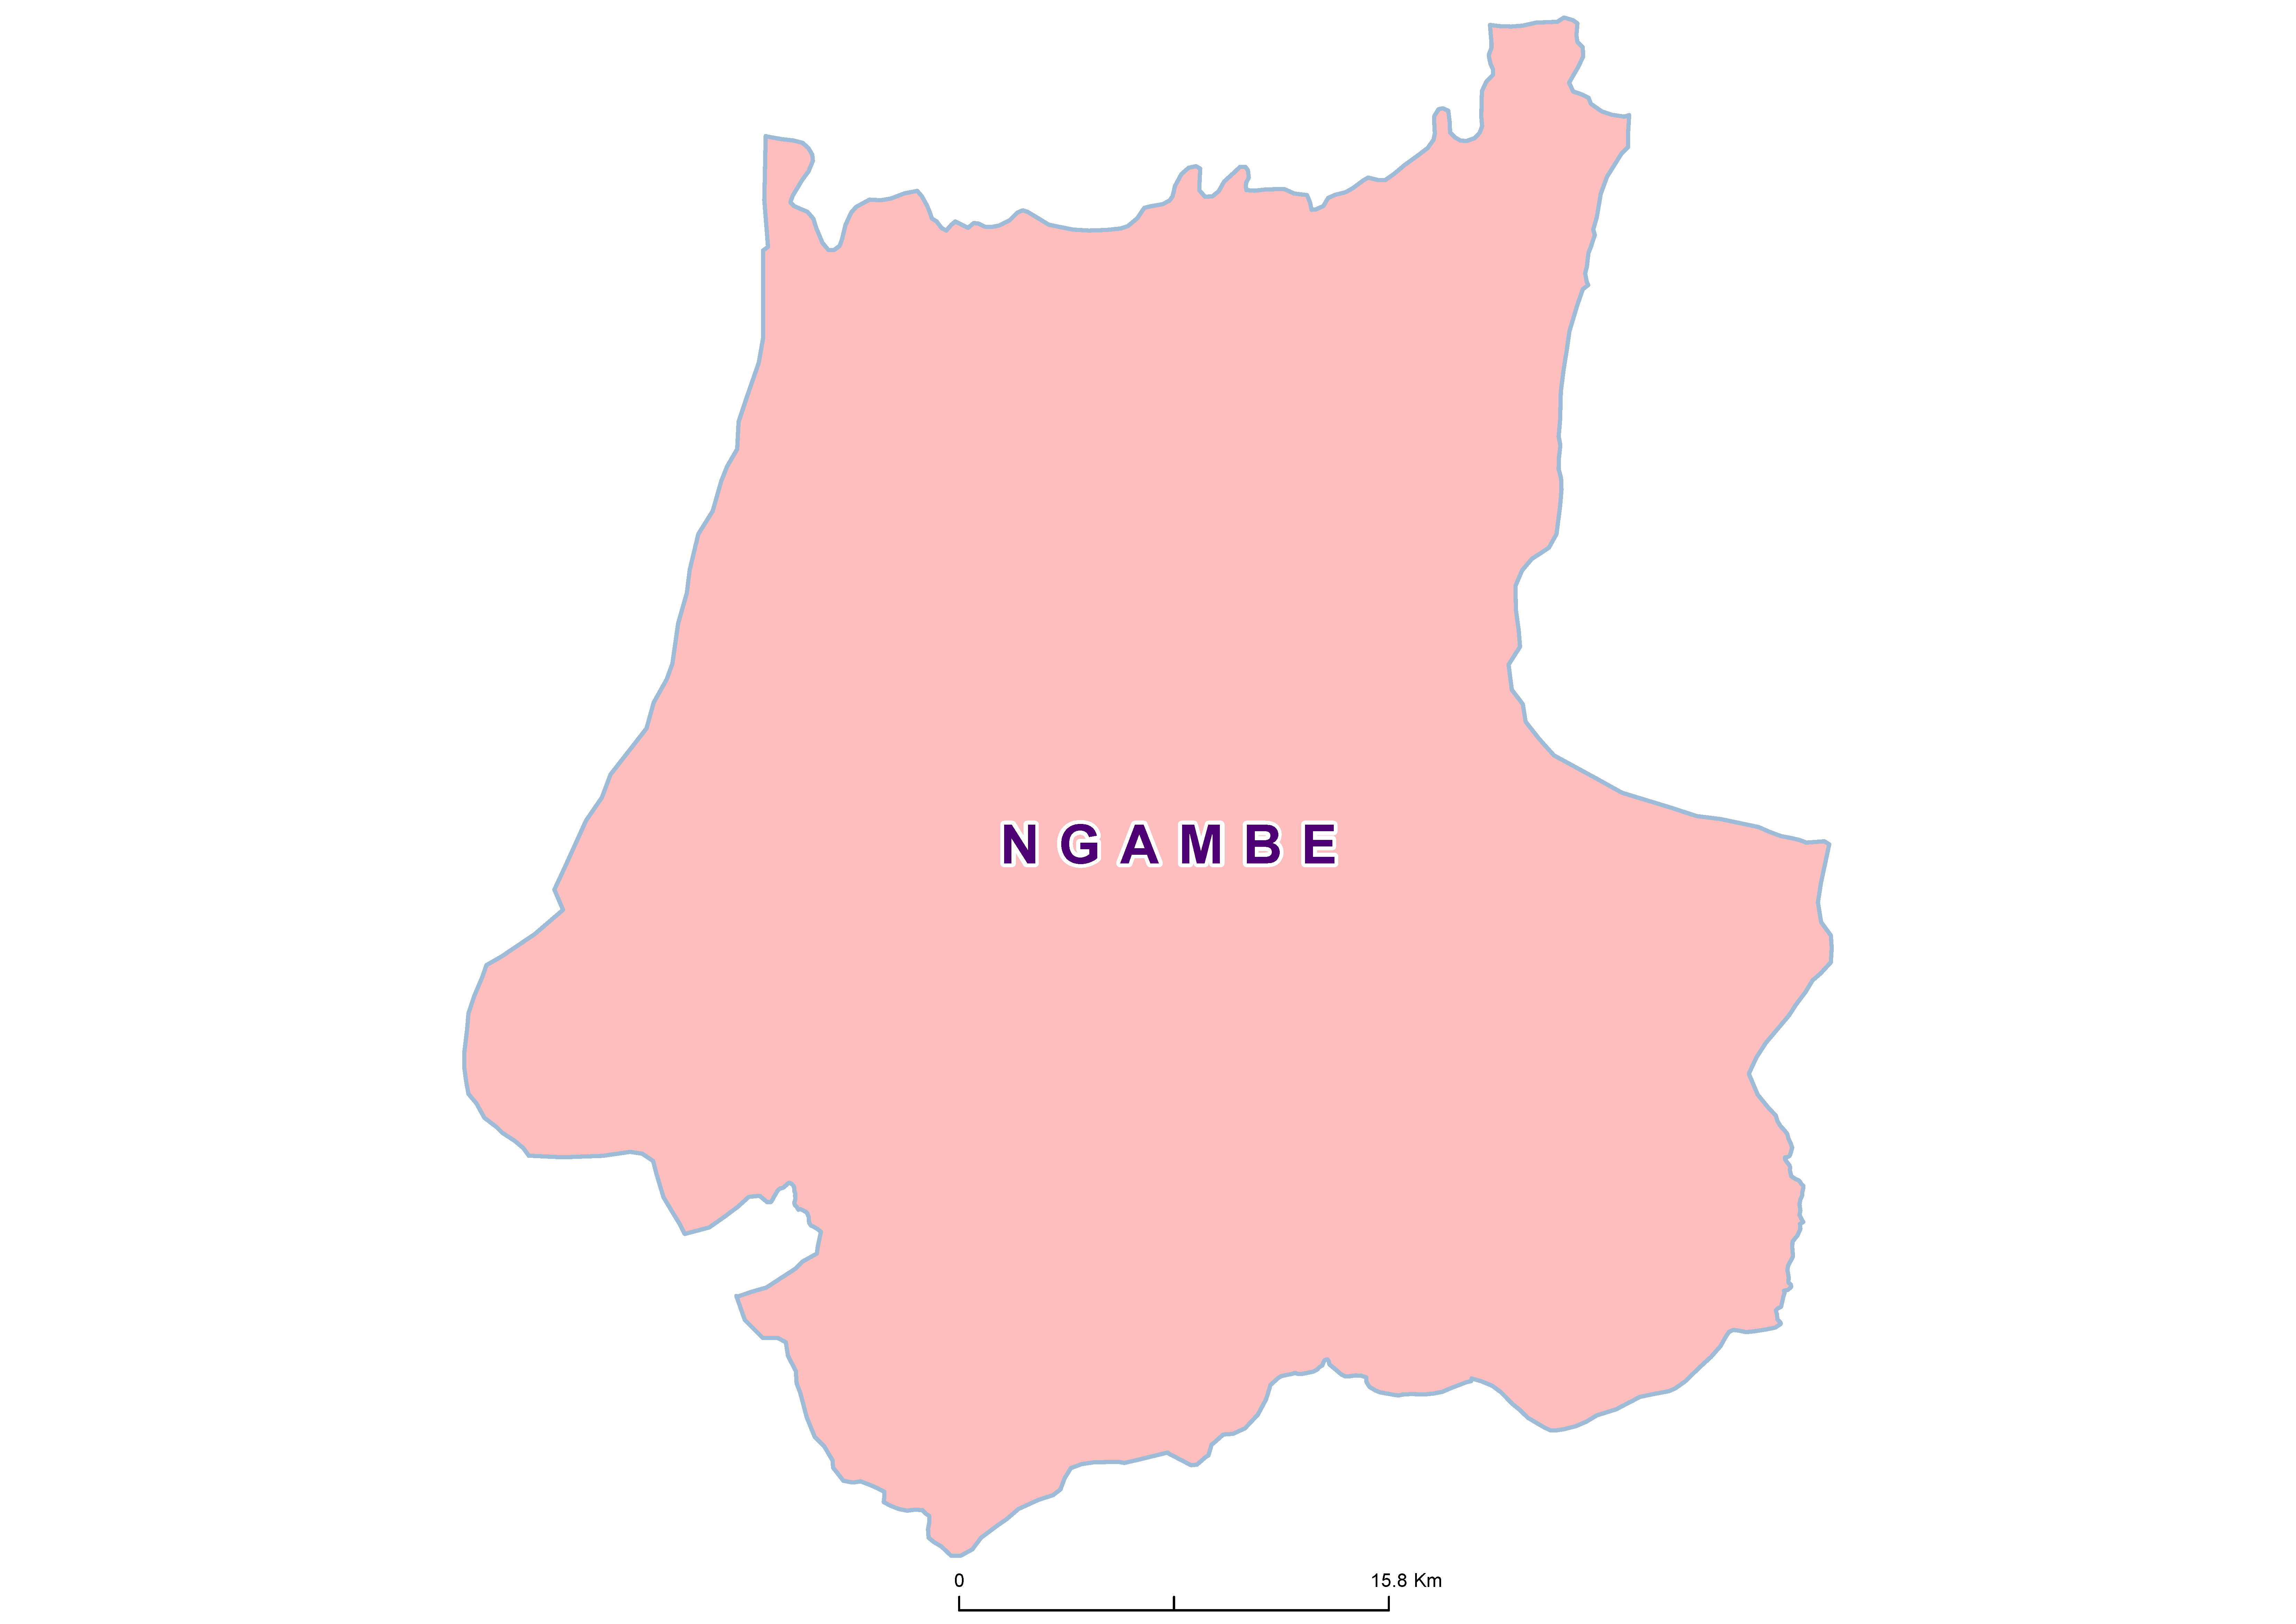 Ngambe Mean SCH 19850001